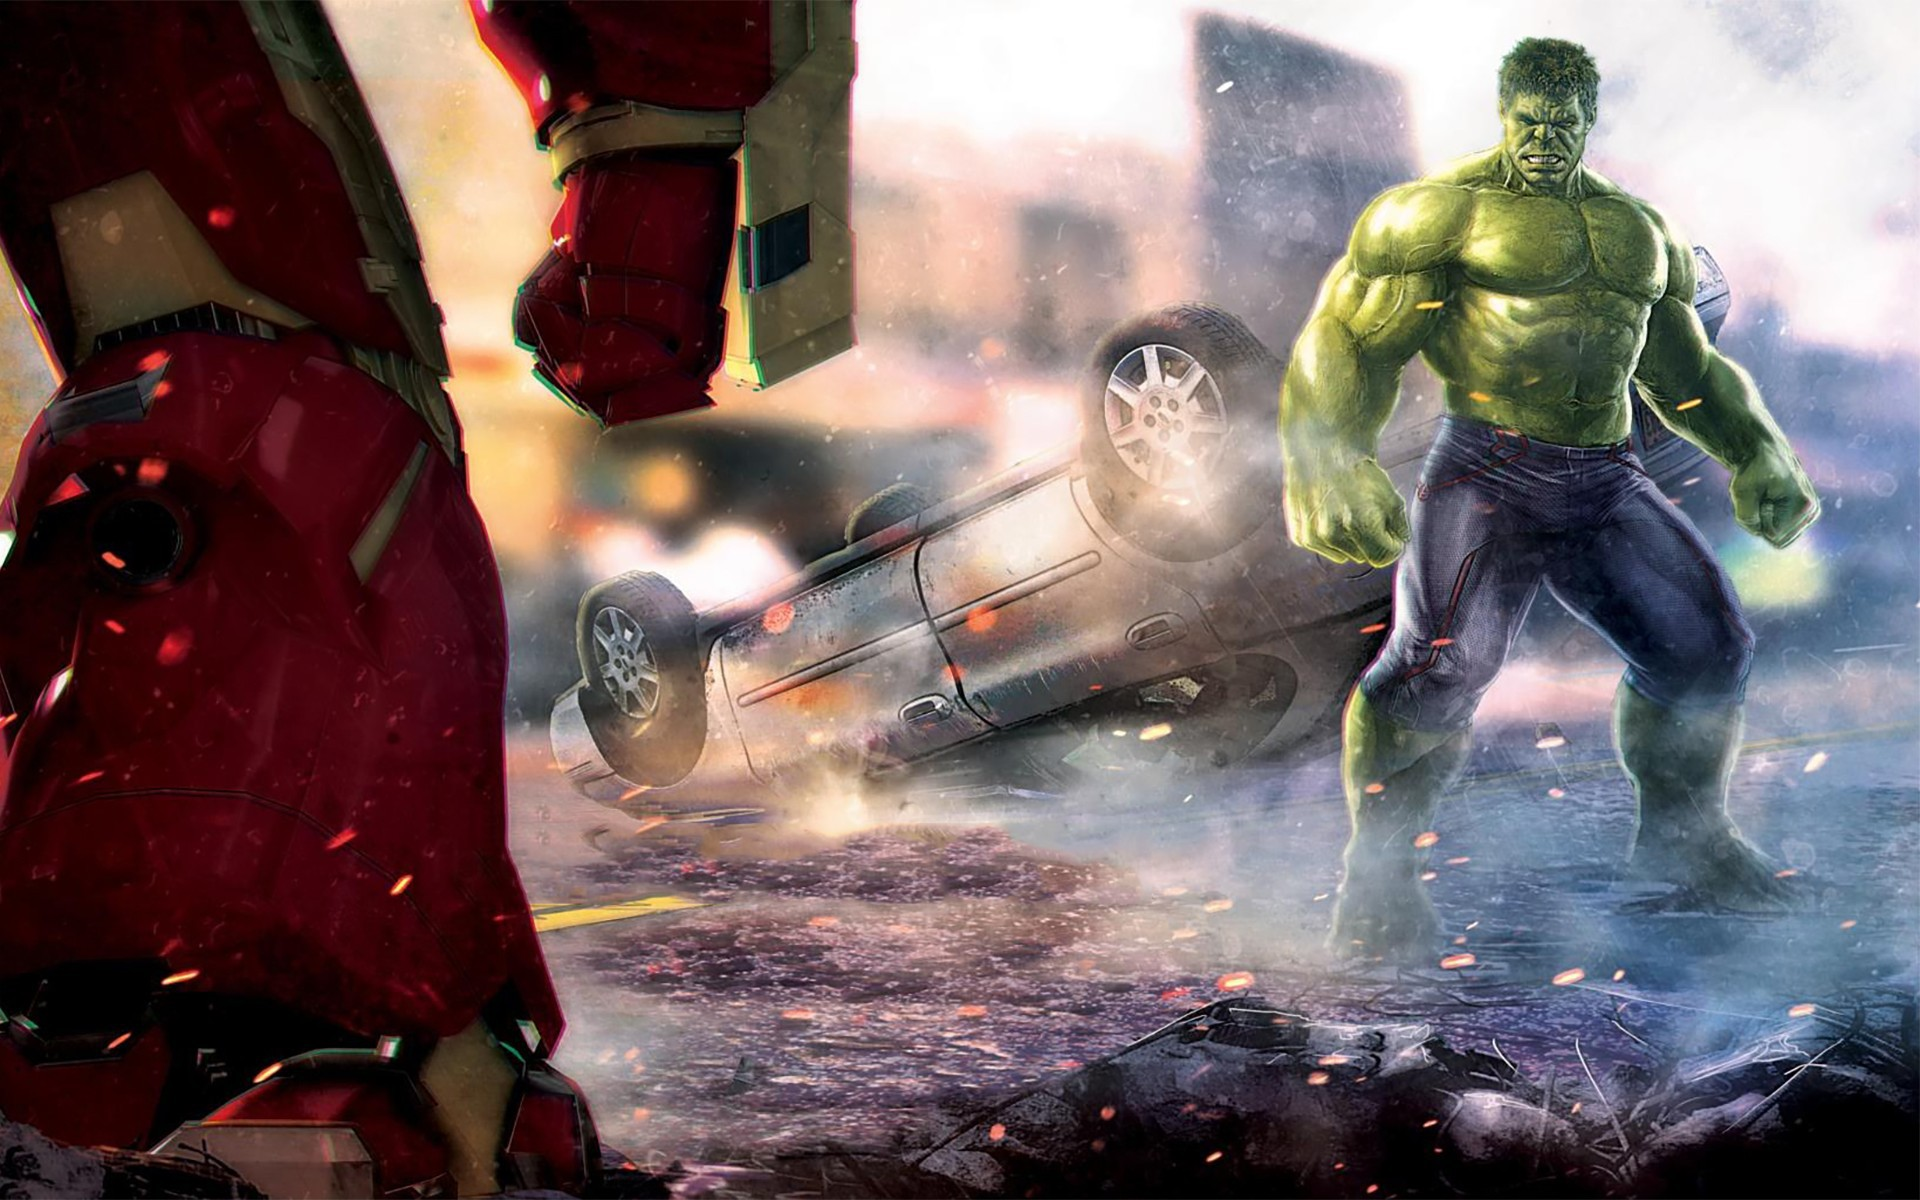 Wallpaper Hulk And Iron Man The Avengers Age Of Ultron